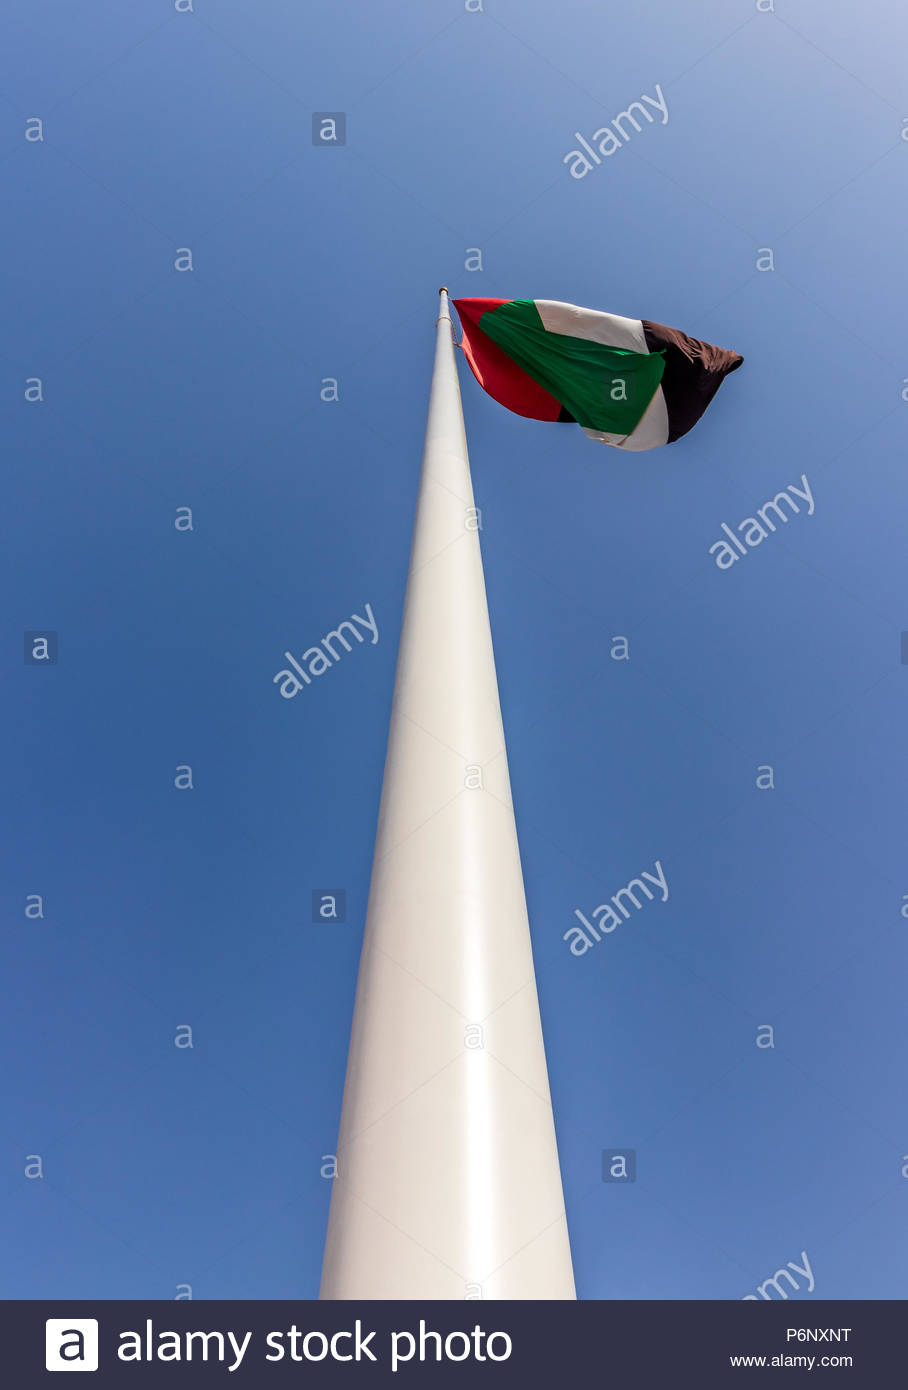 UAE Flag a Symbol of Pride and National Unity. Stock Photo